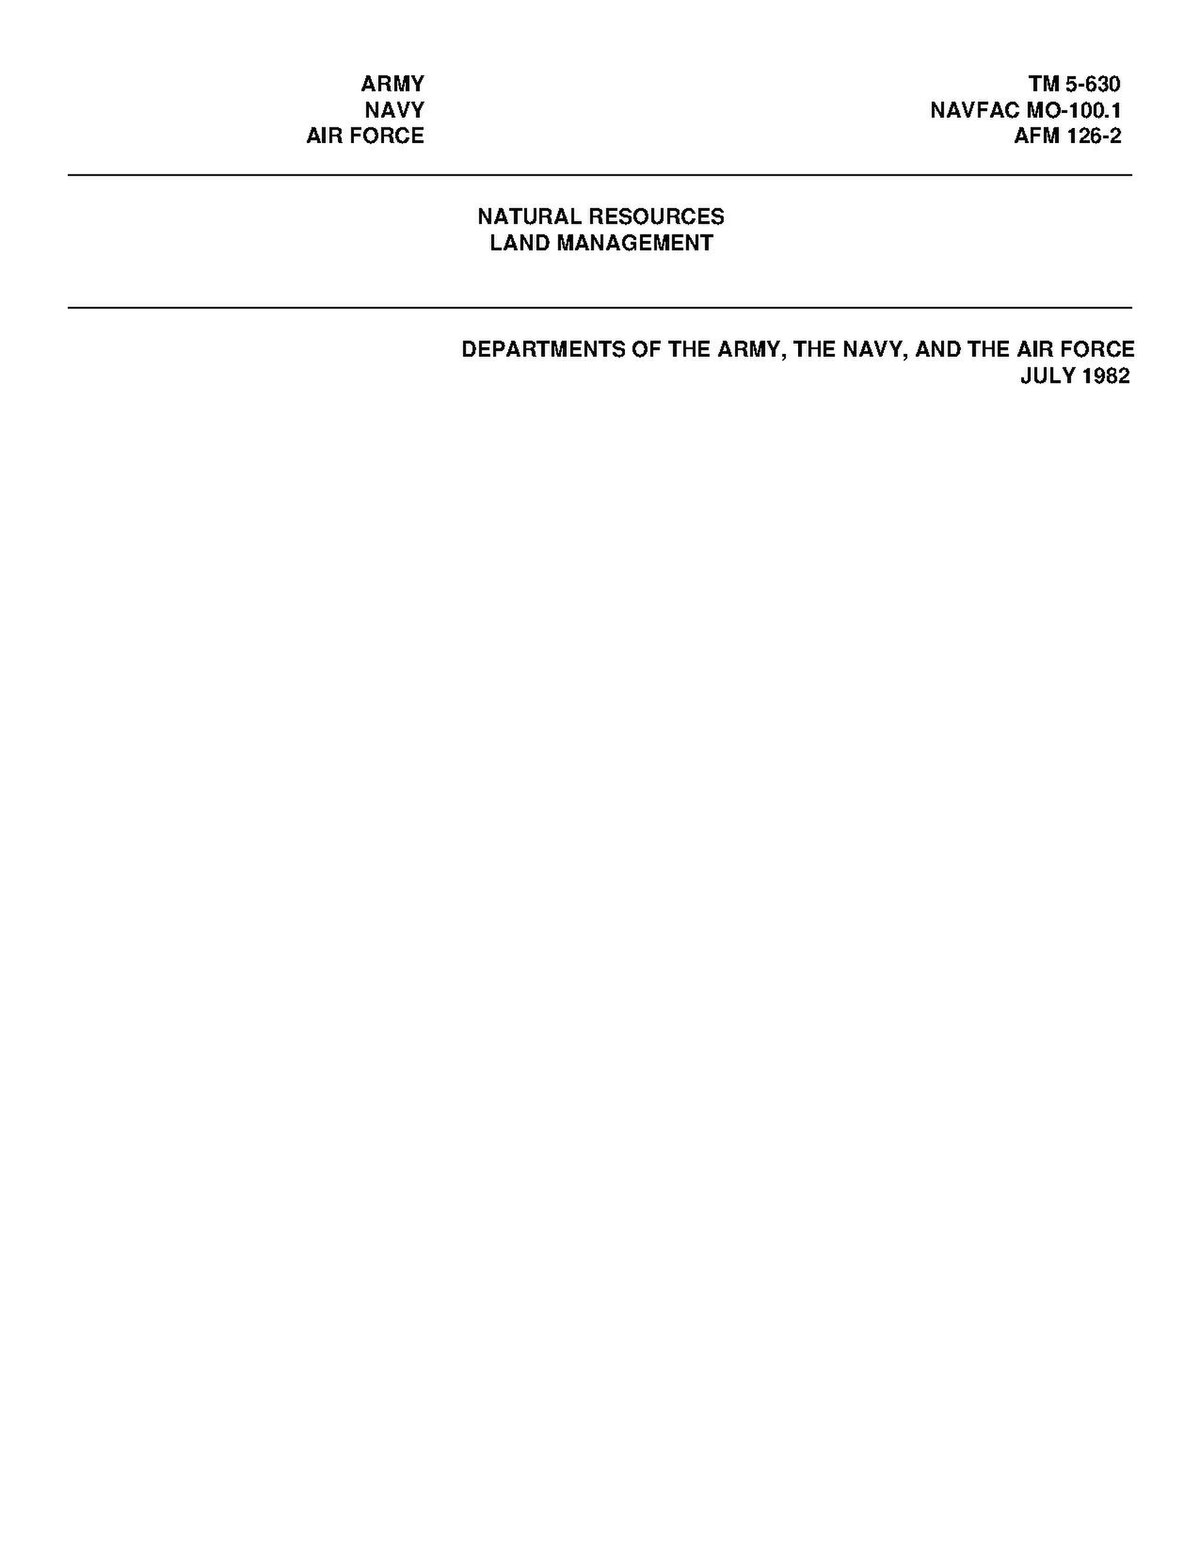 File:Natural Resources - Land Management.pdf - Wikimedia Commons